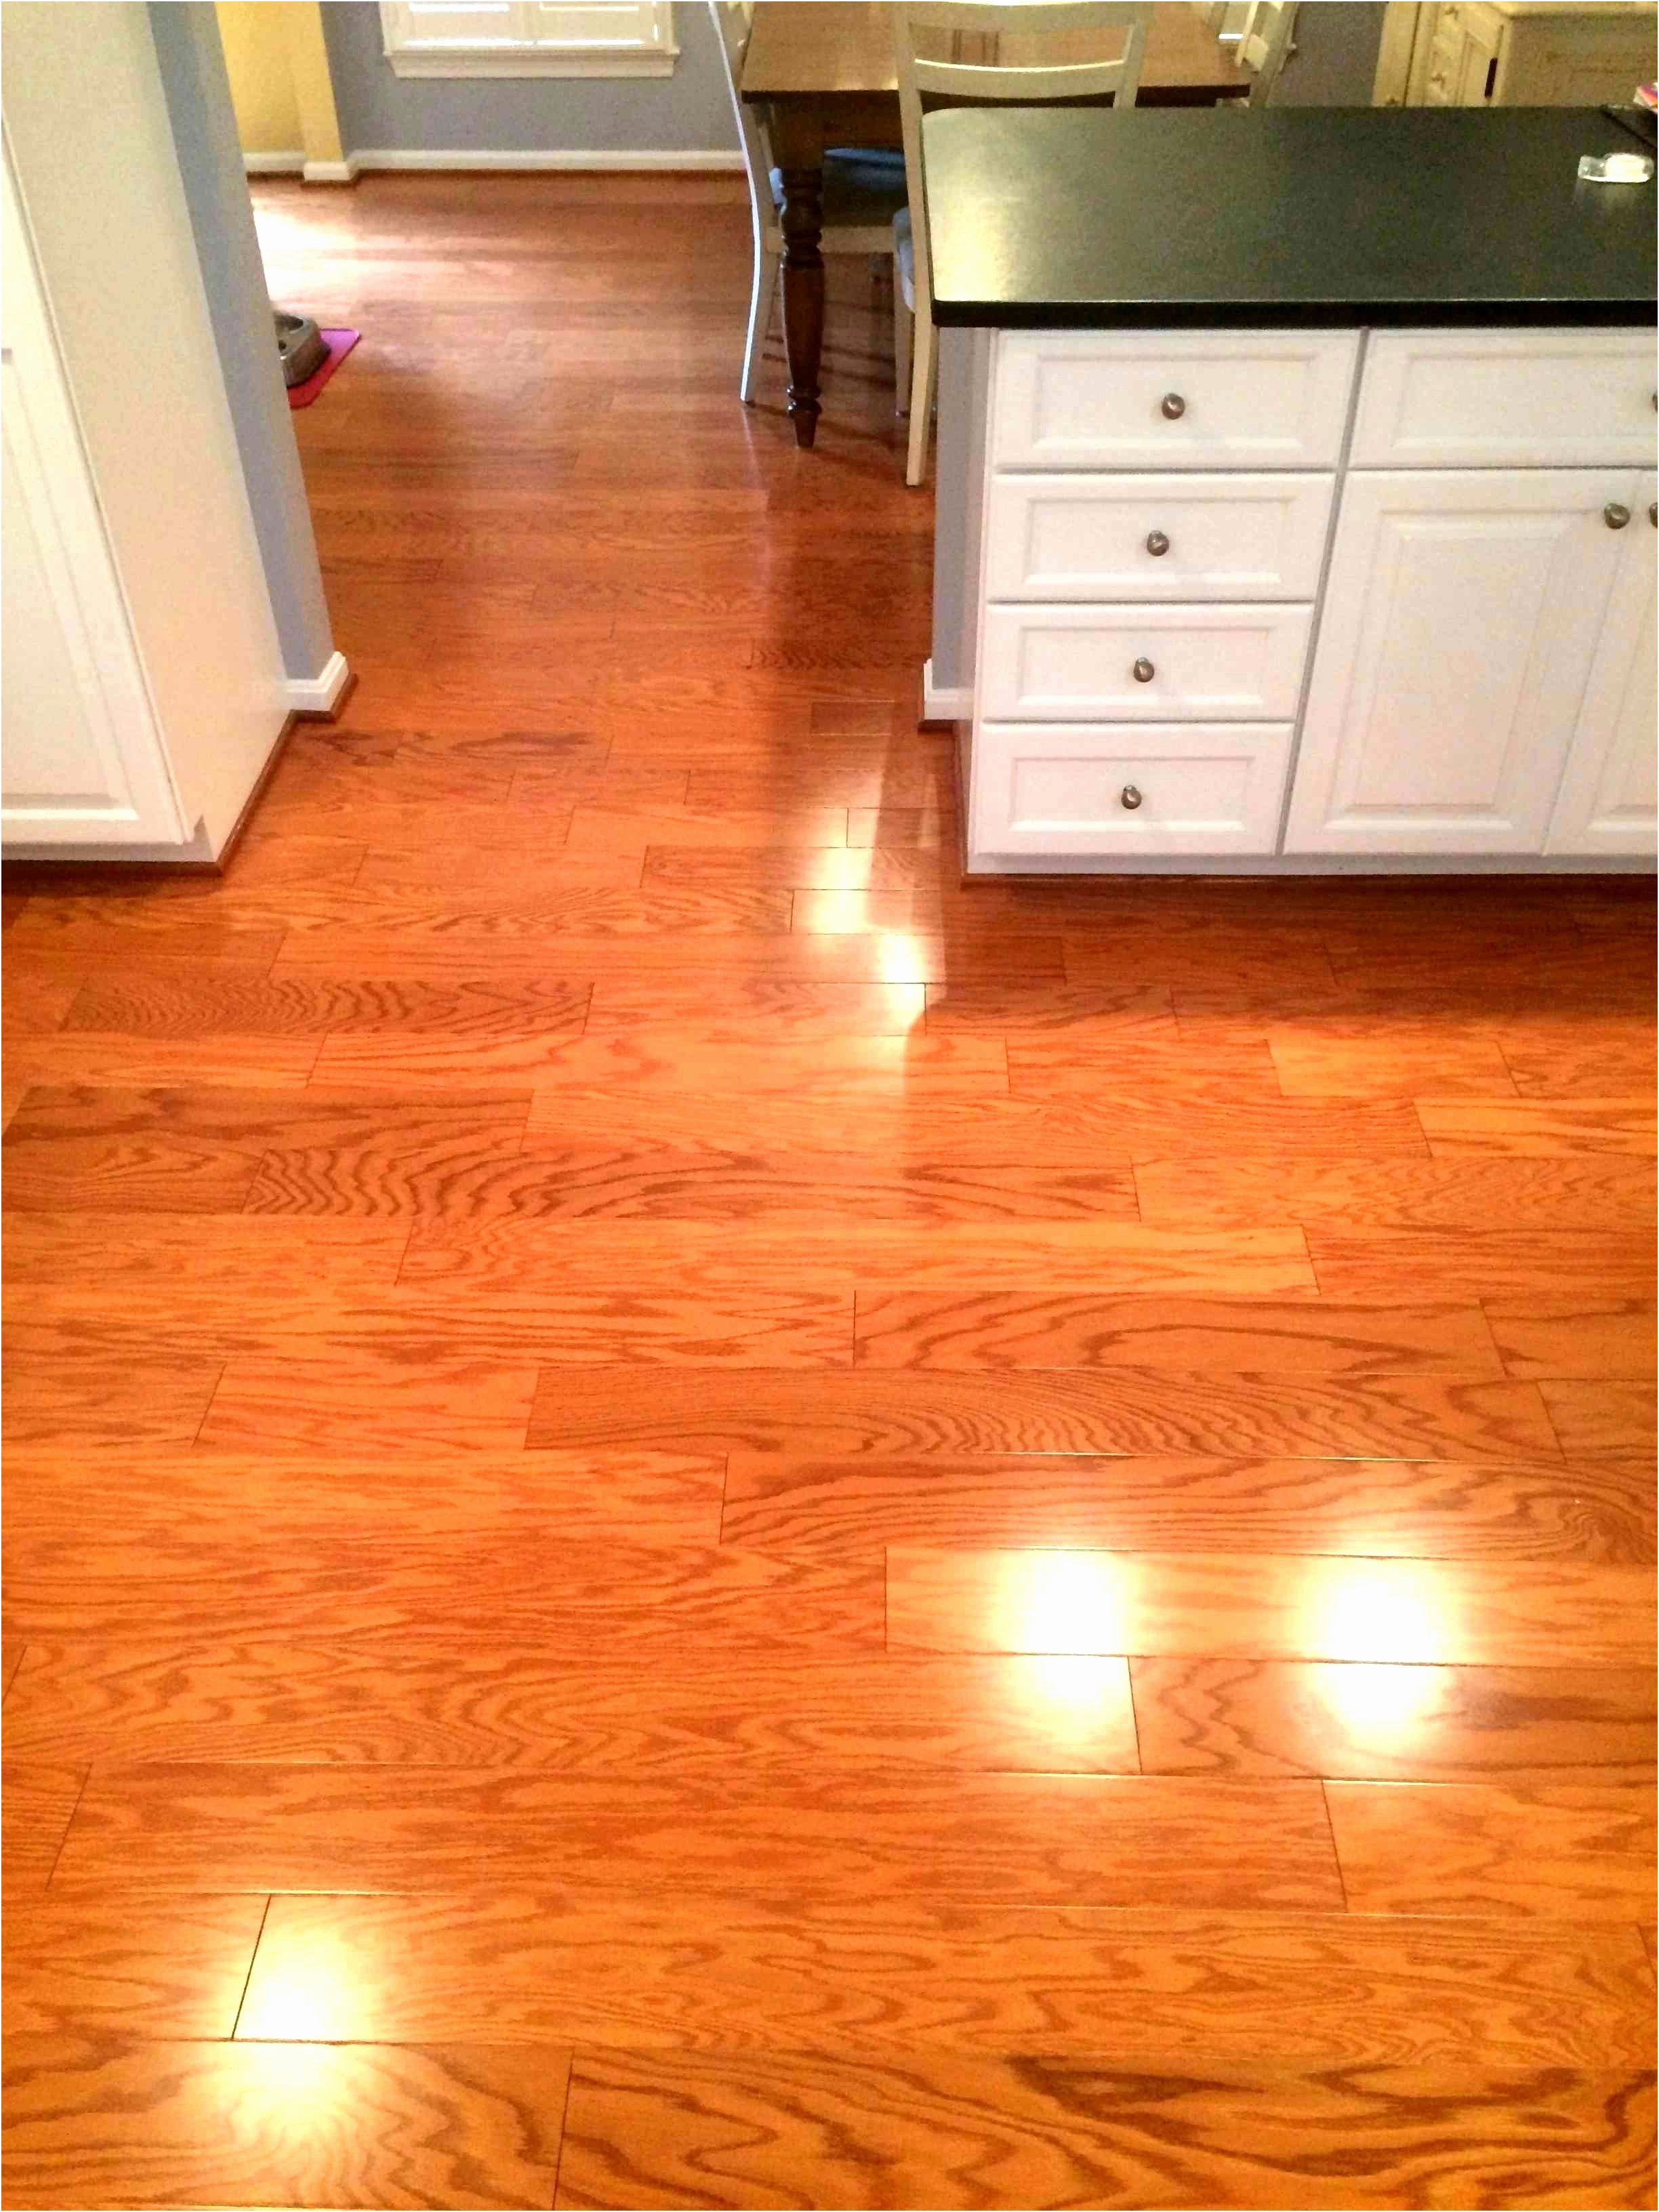 22 Lovable Cost To Install Hardwood Floors On Stairs Unique | Installing Hardwood Stair Treads | Stair Stringers | Prefinished Stair Nosing | Staircase Makeover | Laminate | Hardwood Flooring